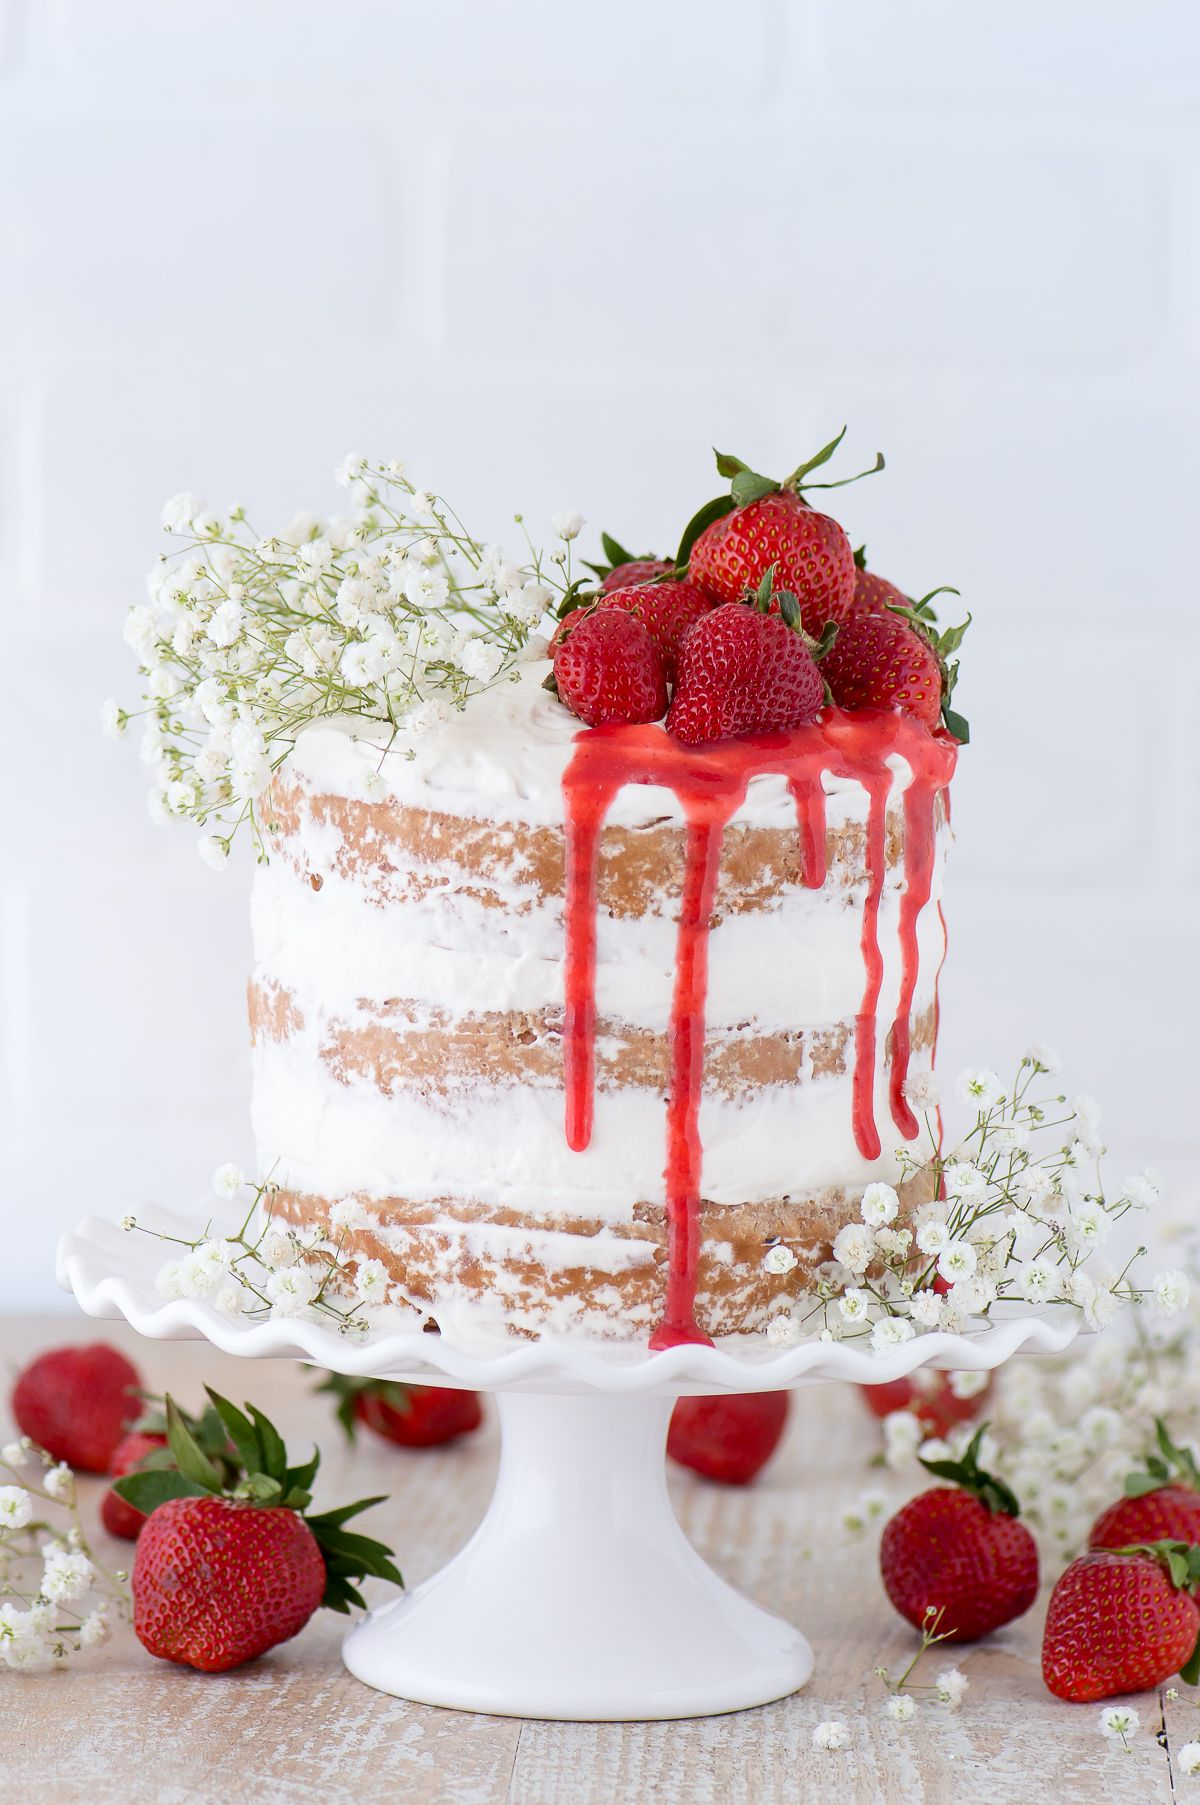 This Strawberry Naked Cake Is Made With Fresh Pureed